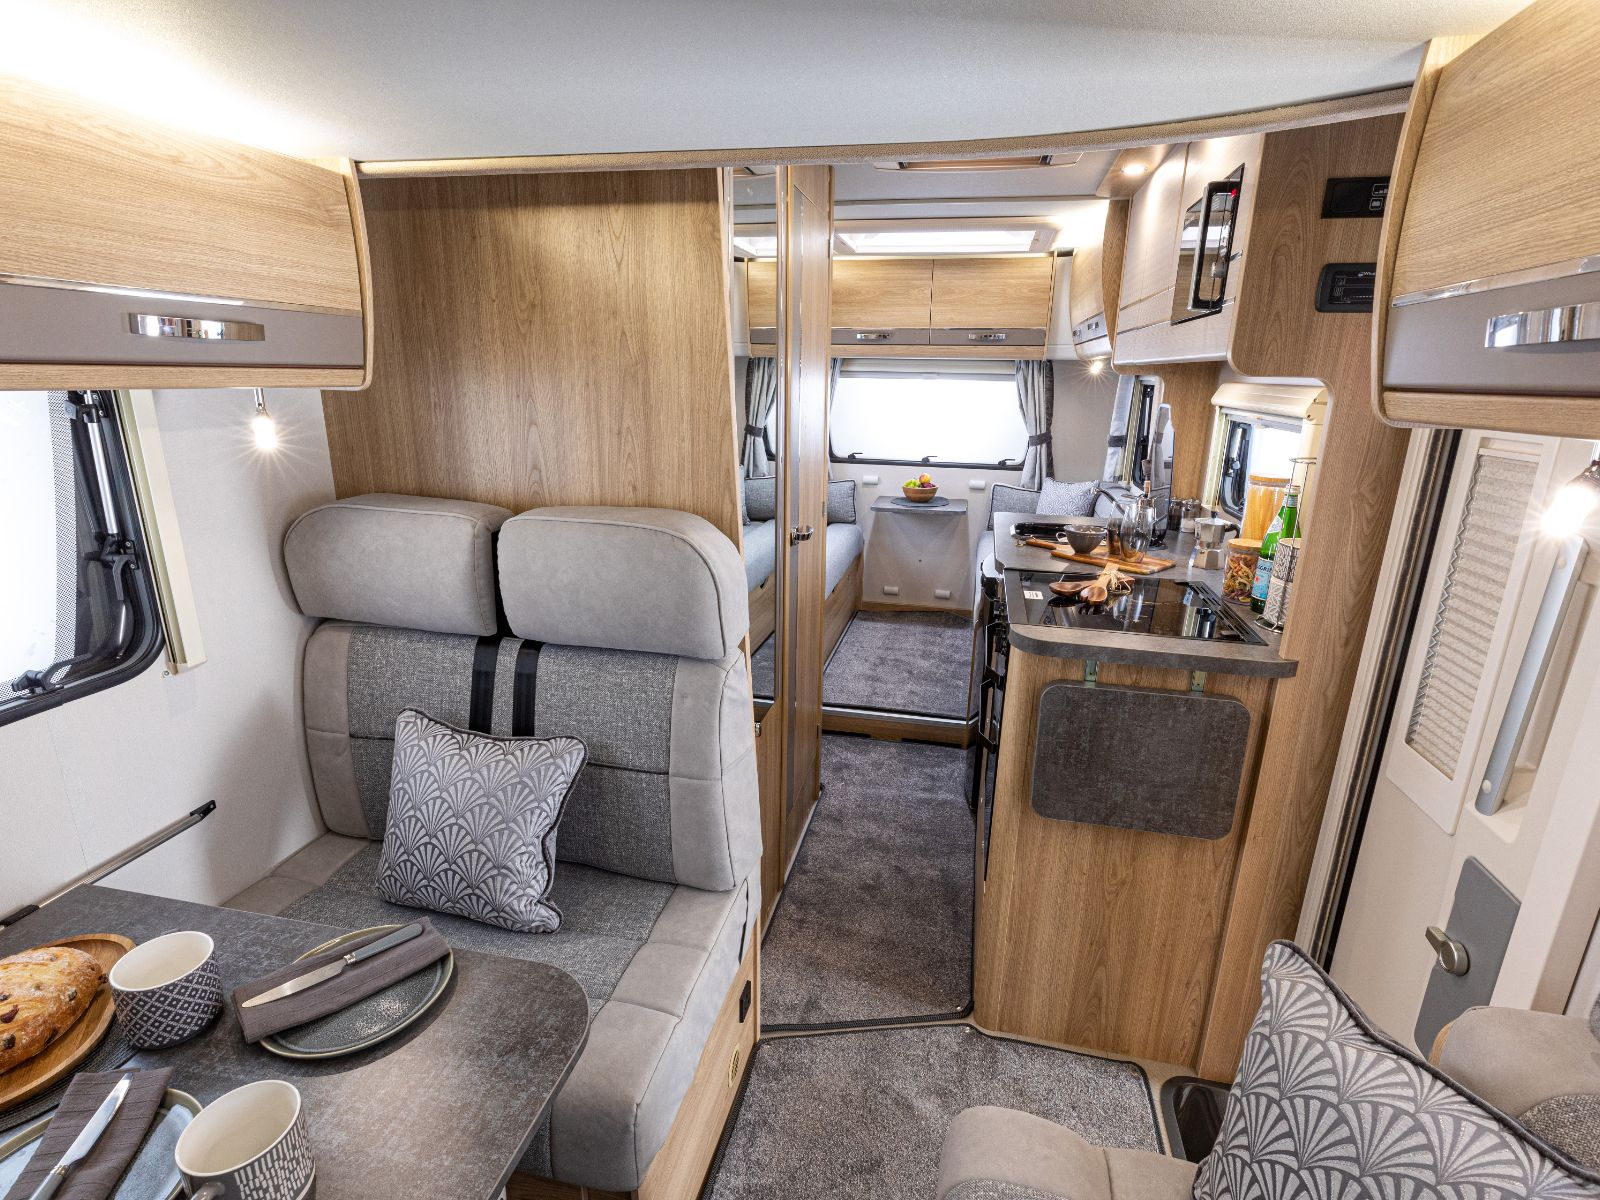 Impressa Motorhome Dining Area With Kitchen View'